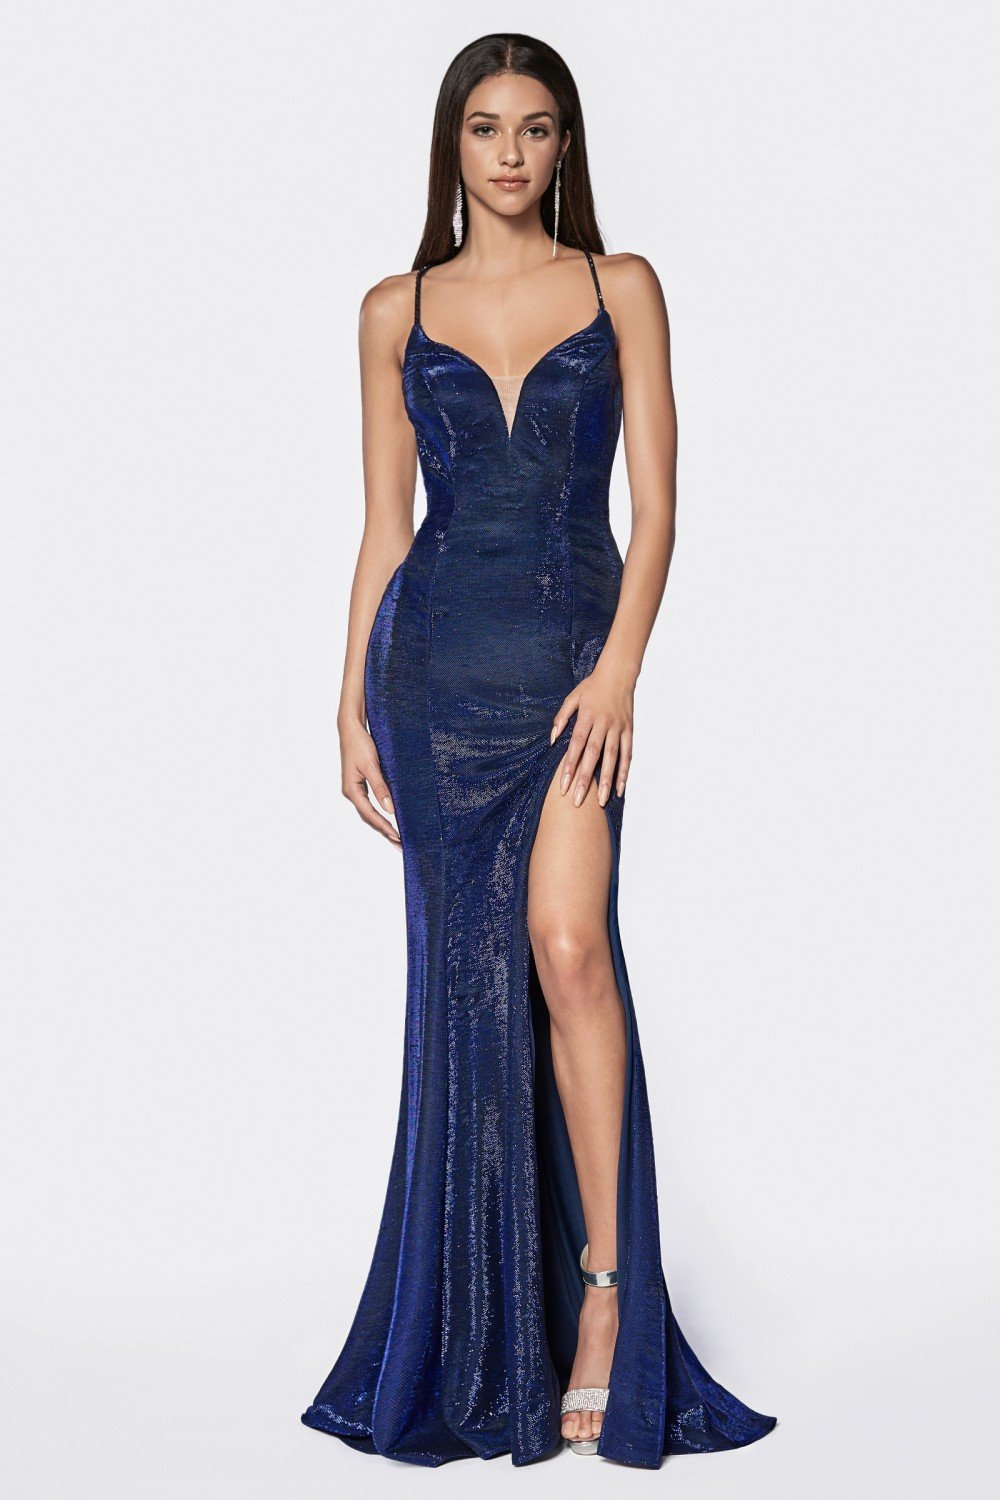 Metallic blue fitted metallic gown with criss cross beaded back ans leg slit.